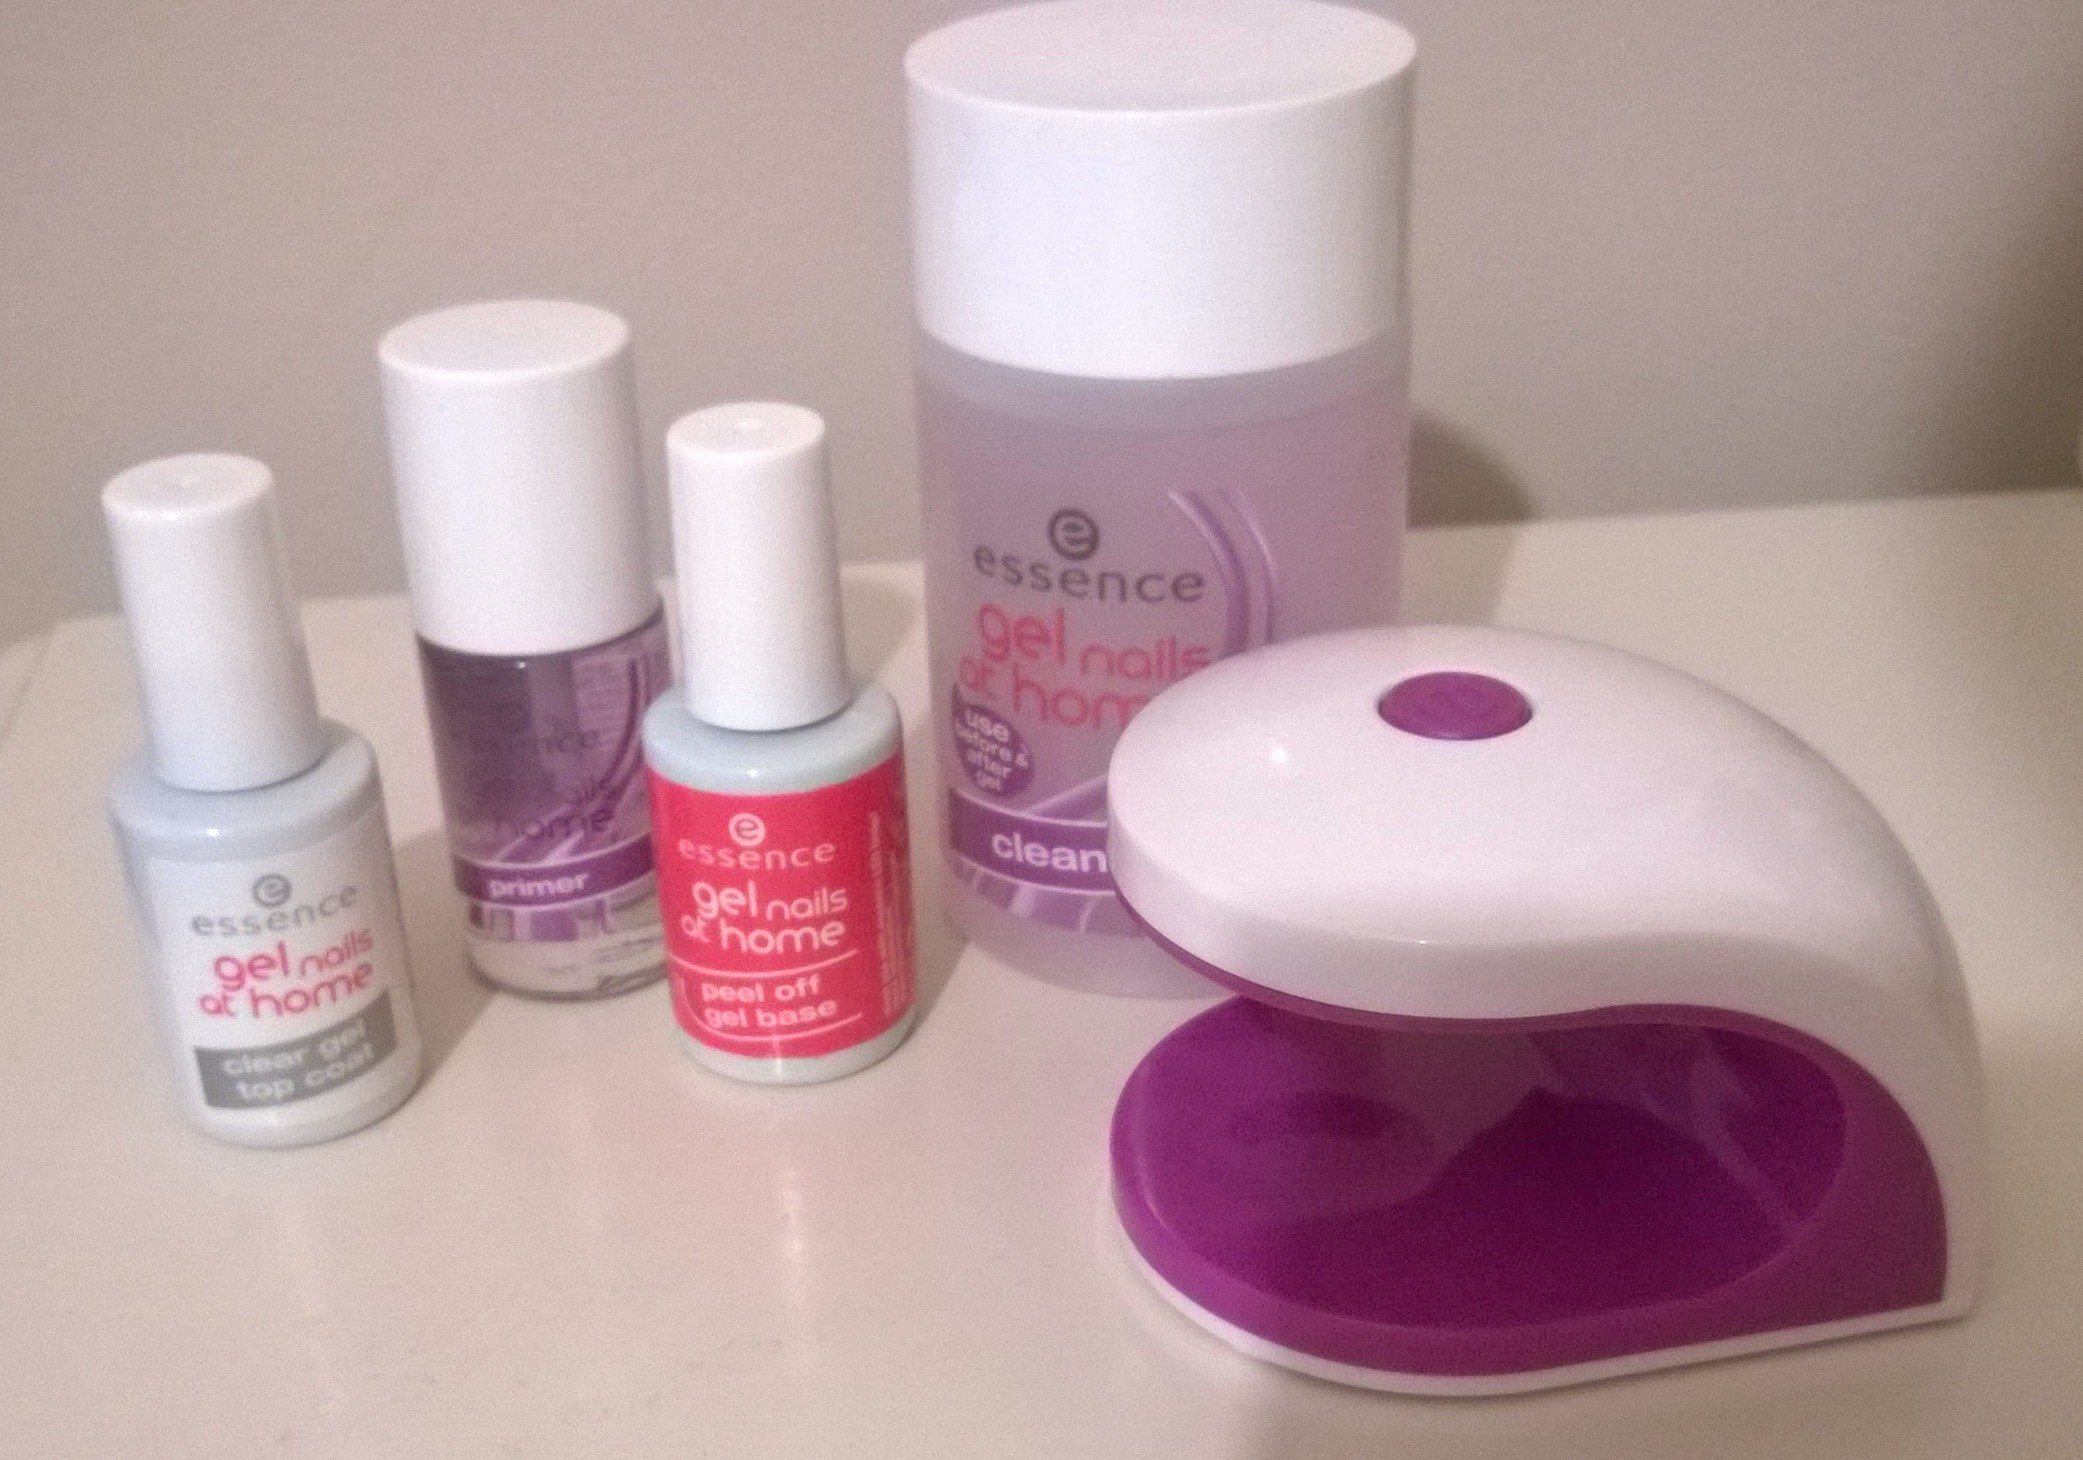 Essence Gel Nails At Home Review And Pictures Ah Sure Tis Lovely